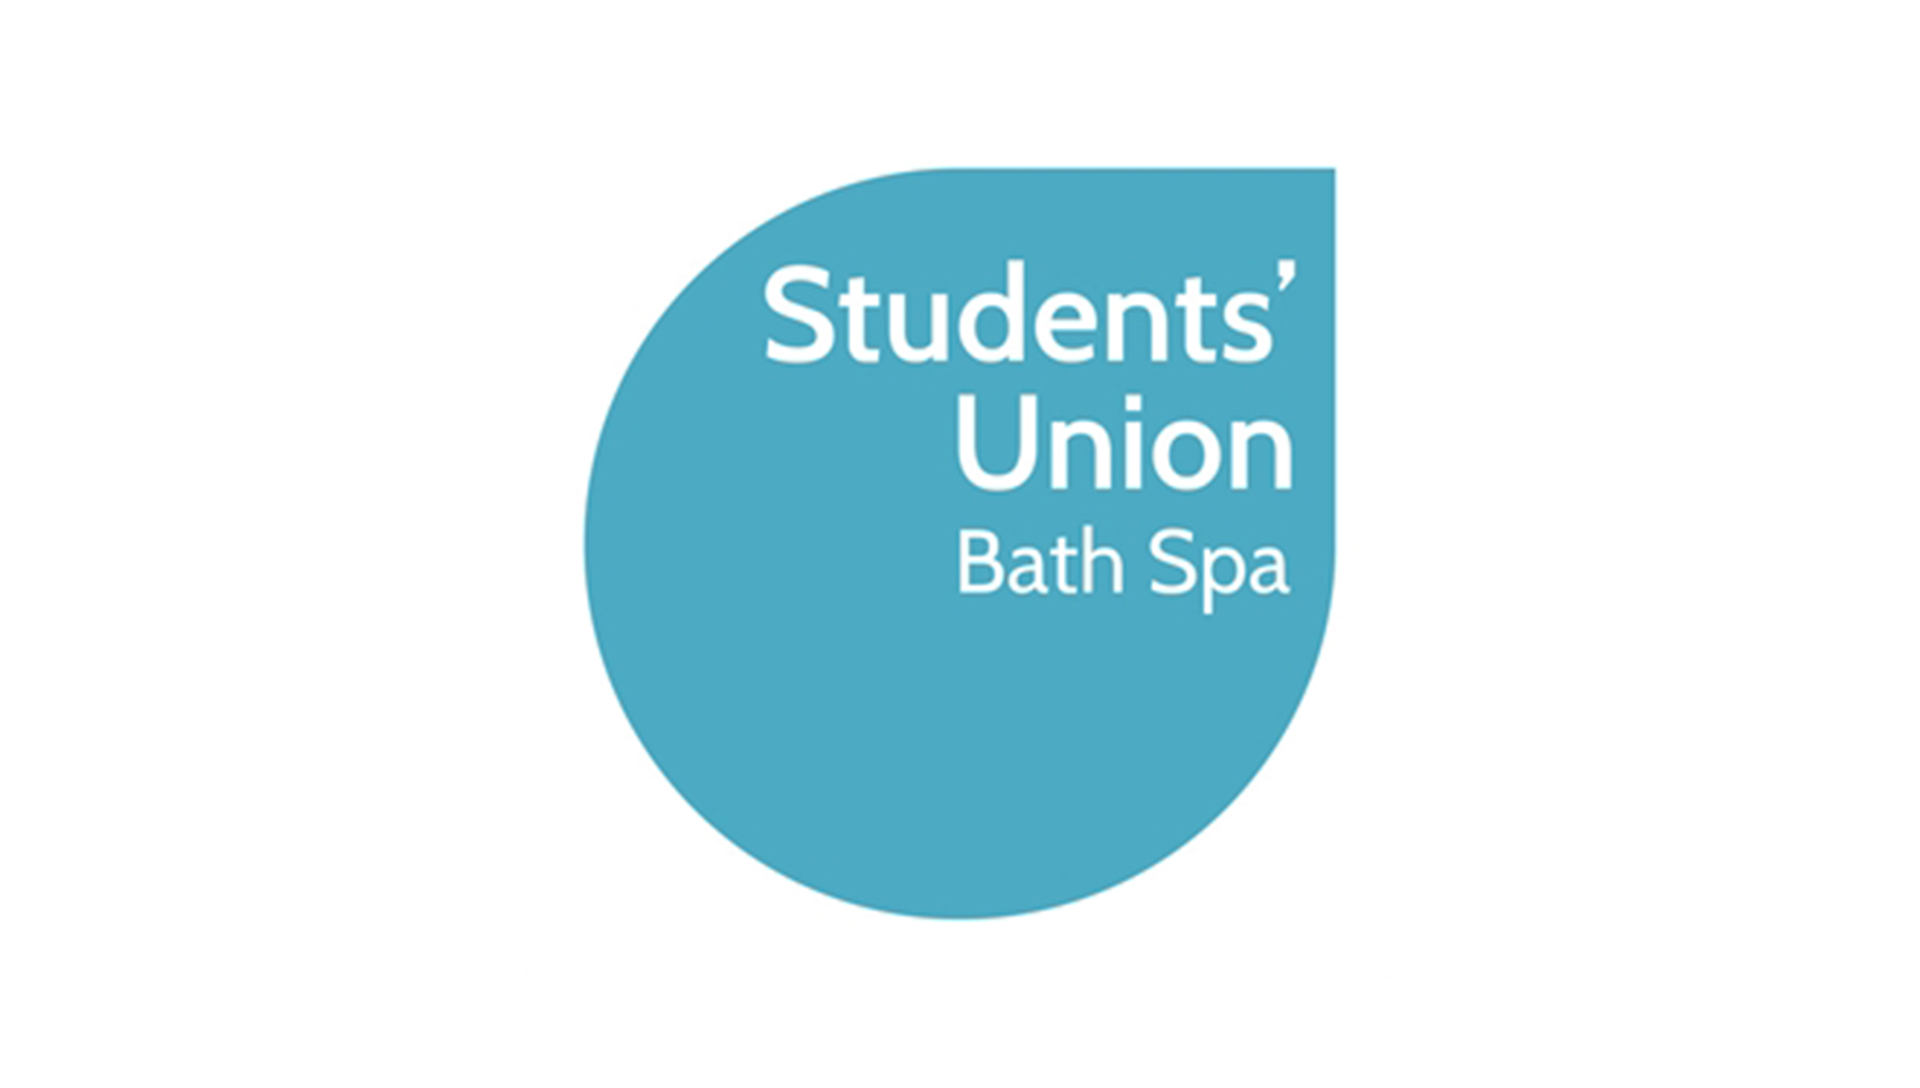 Bath Spa Students' Union Logo